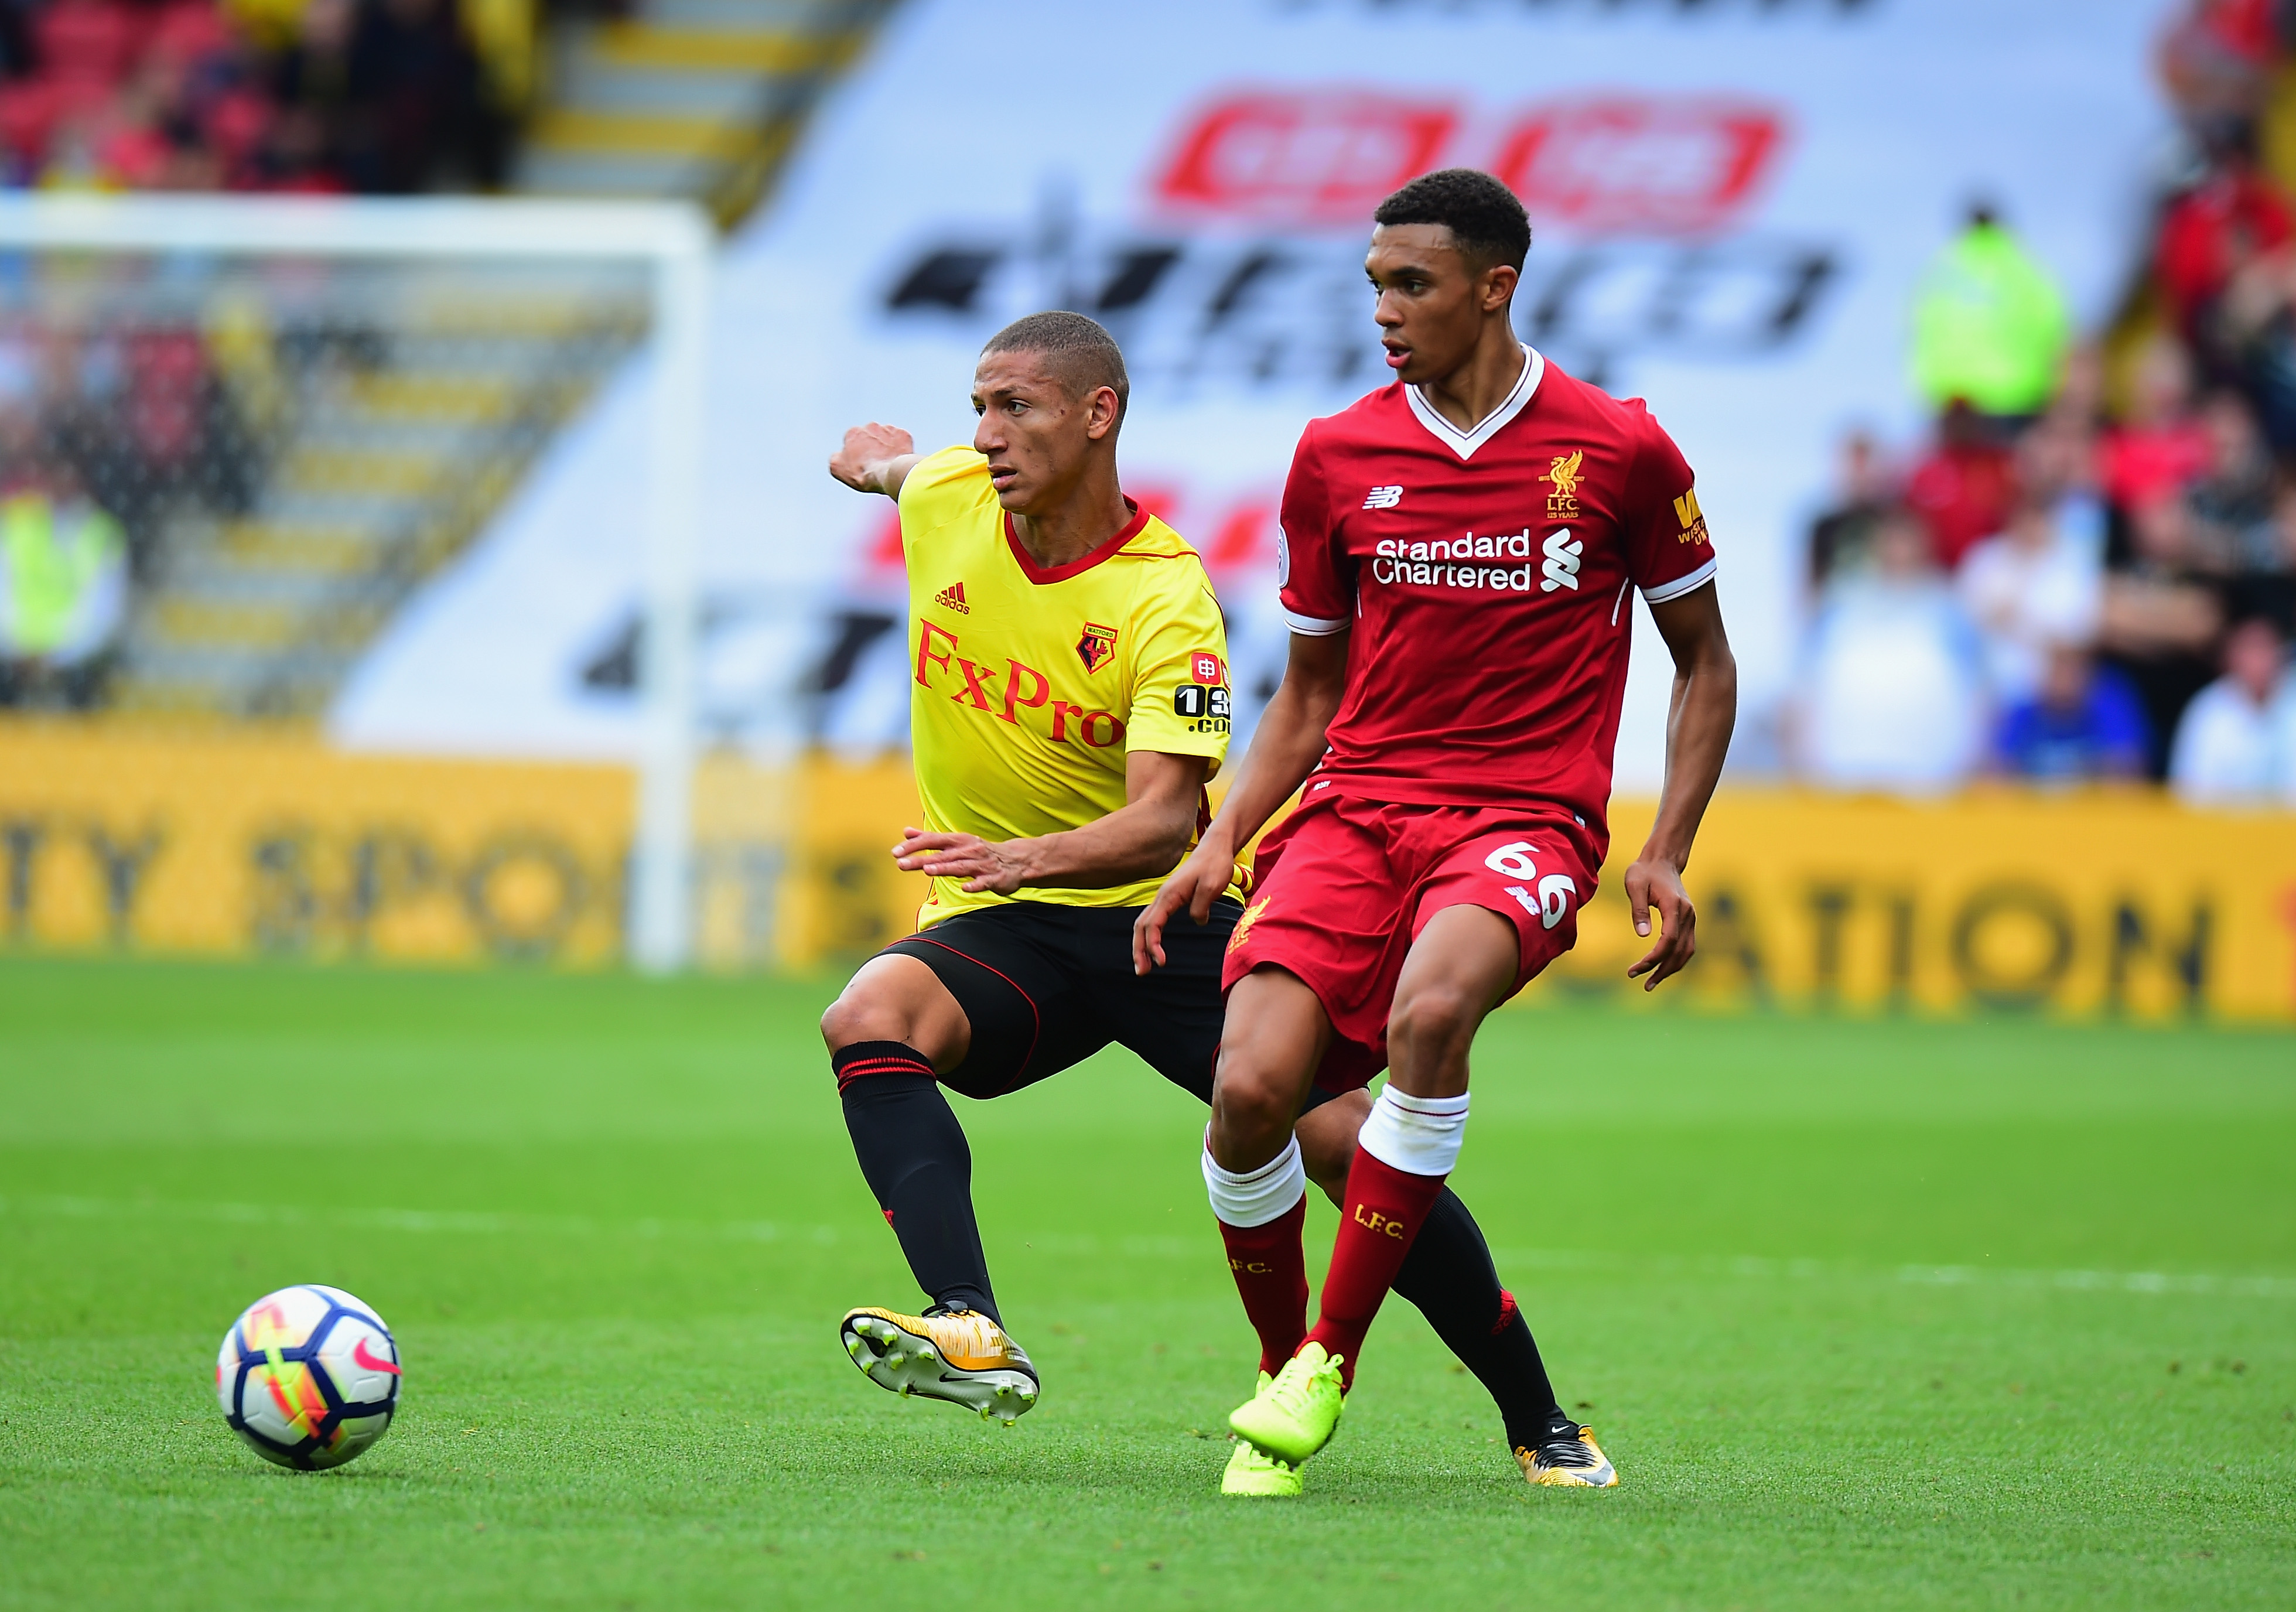 Trent Alexander-Arnold Shows He Is A Star On The Rise